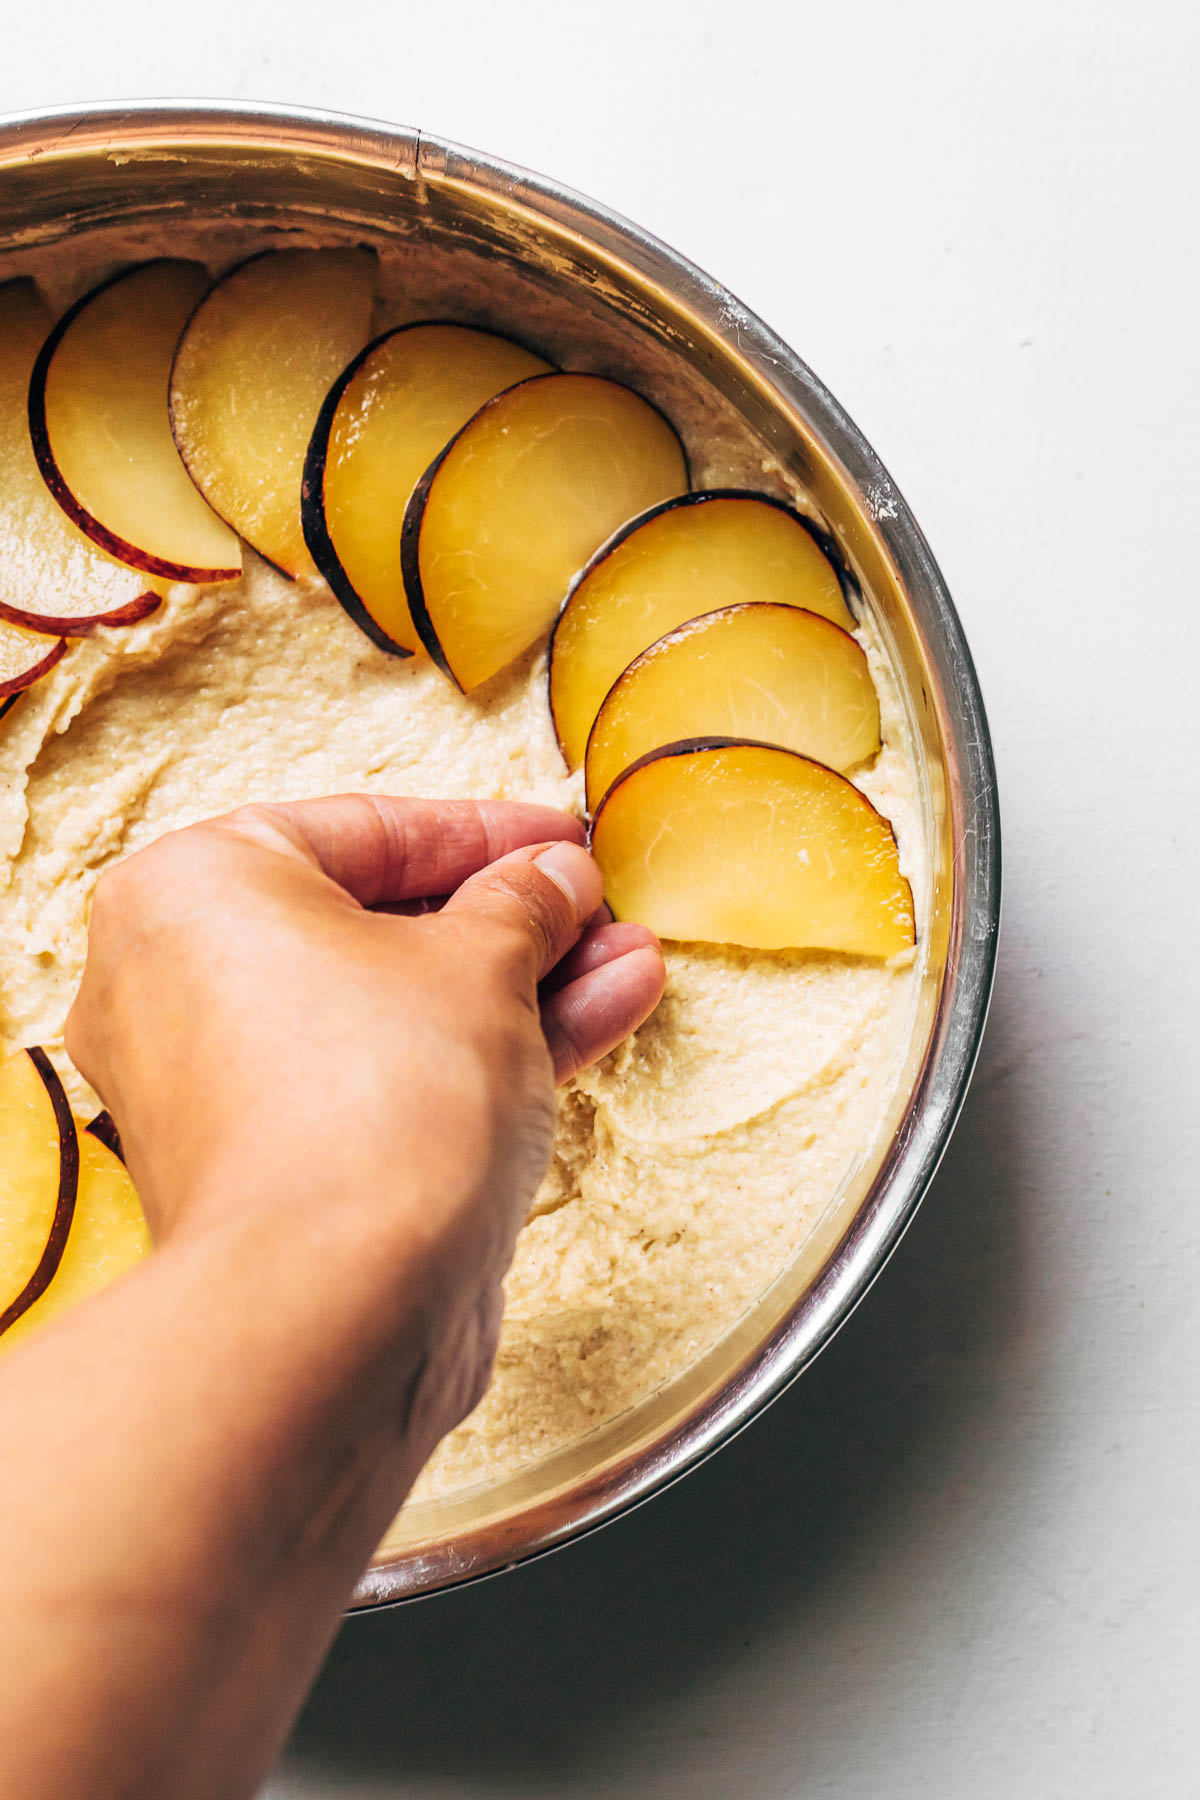 A hand placing a slice of plum on top of cake batter inside a metal cake tin.